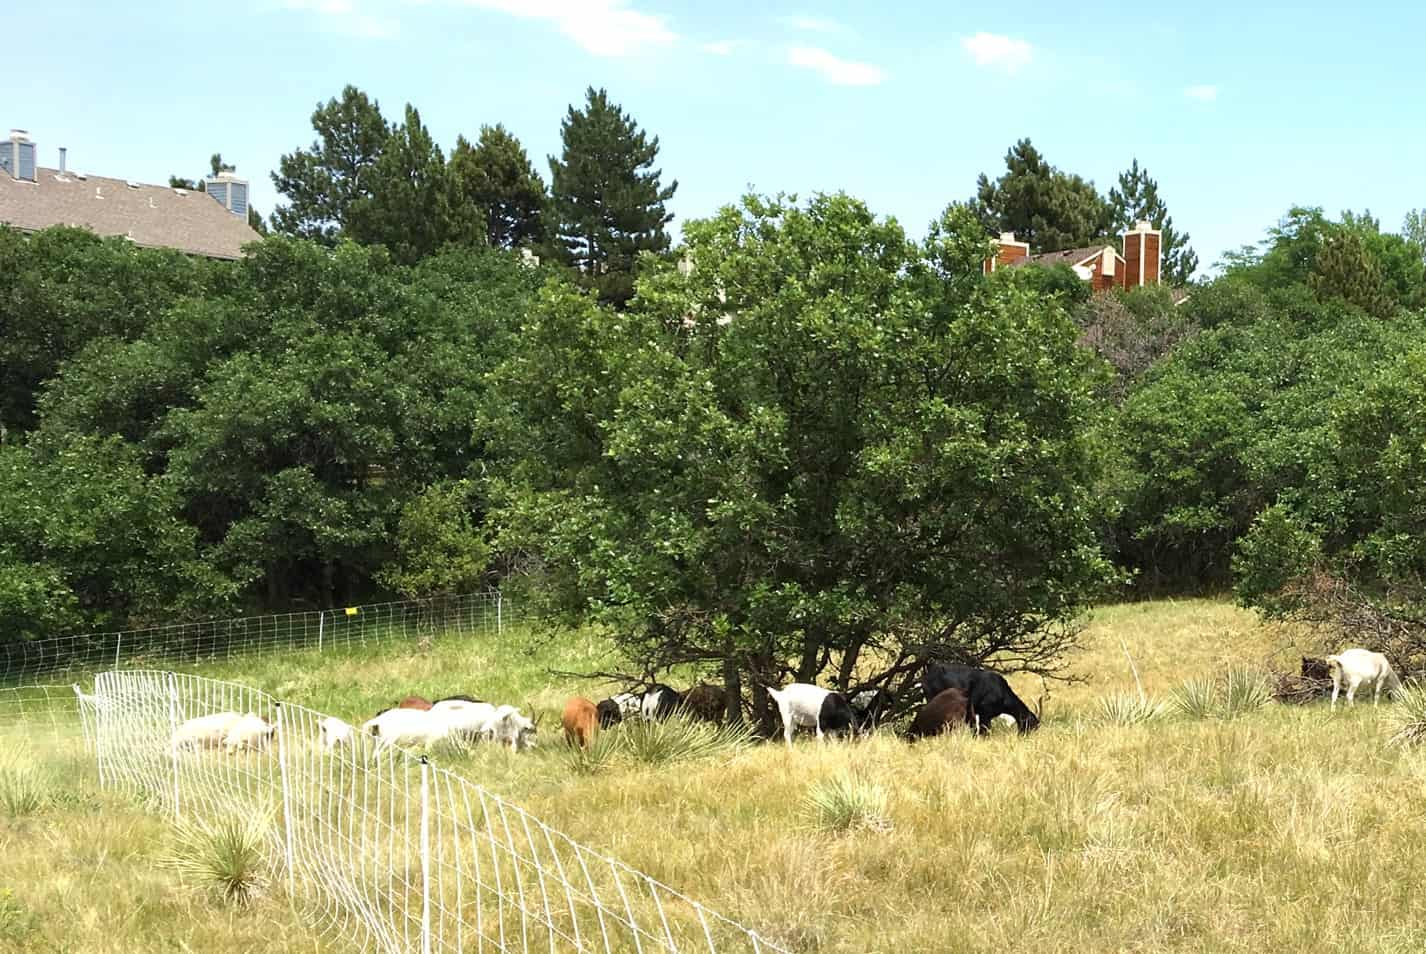 A herd of goats grazing near and on a Gamble oak